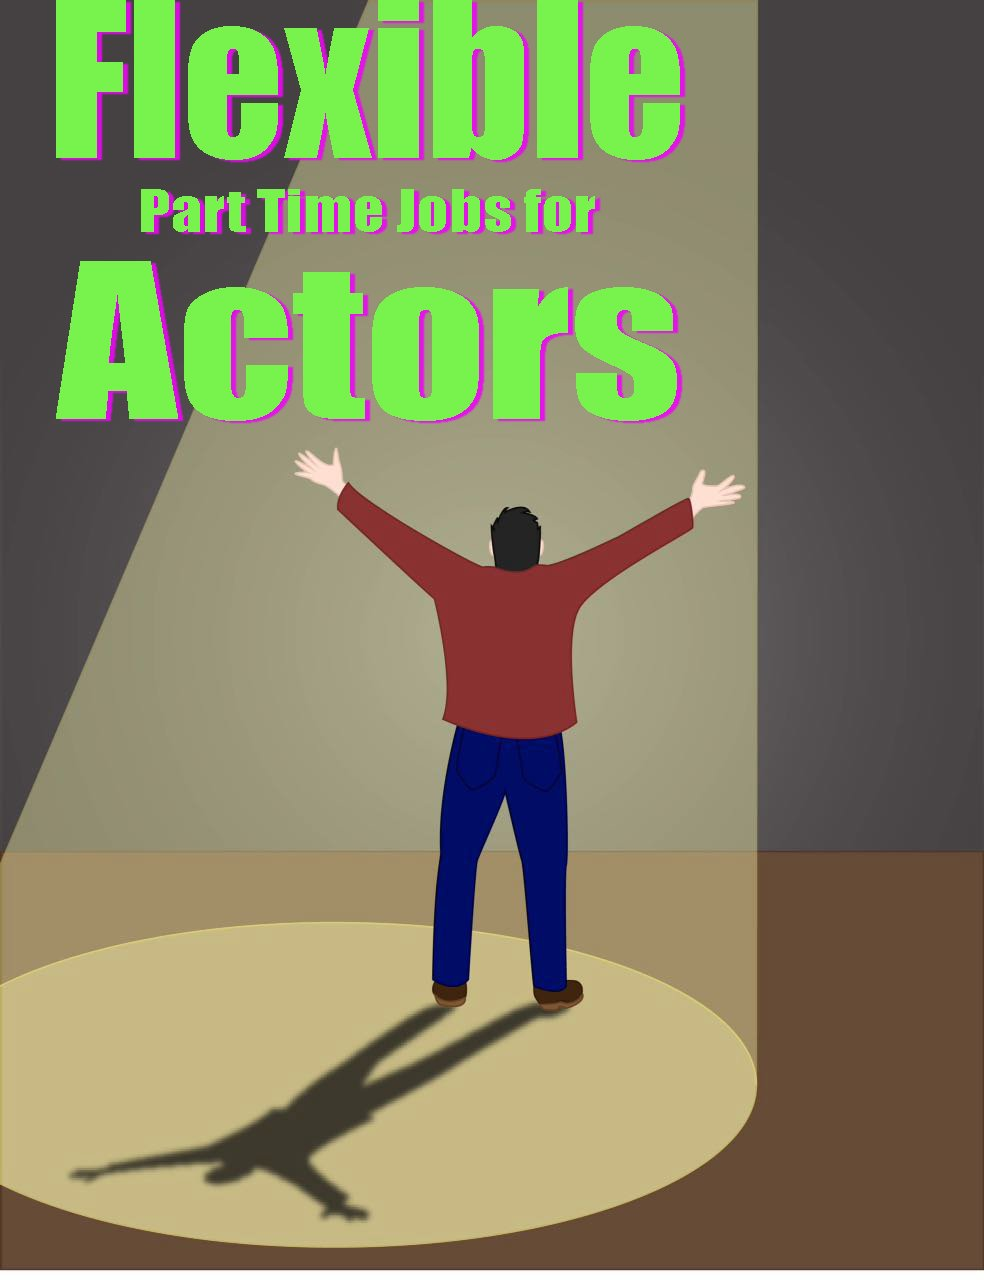 Flexible Part Time Jobs for Actors – How To Work Smart